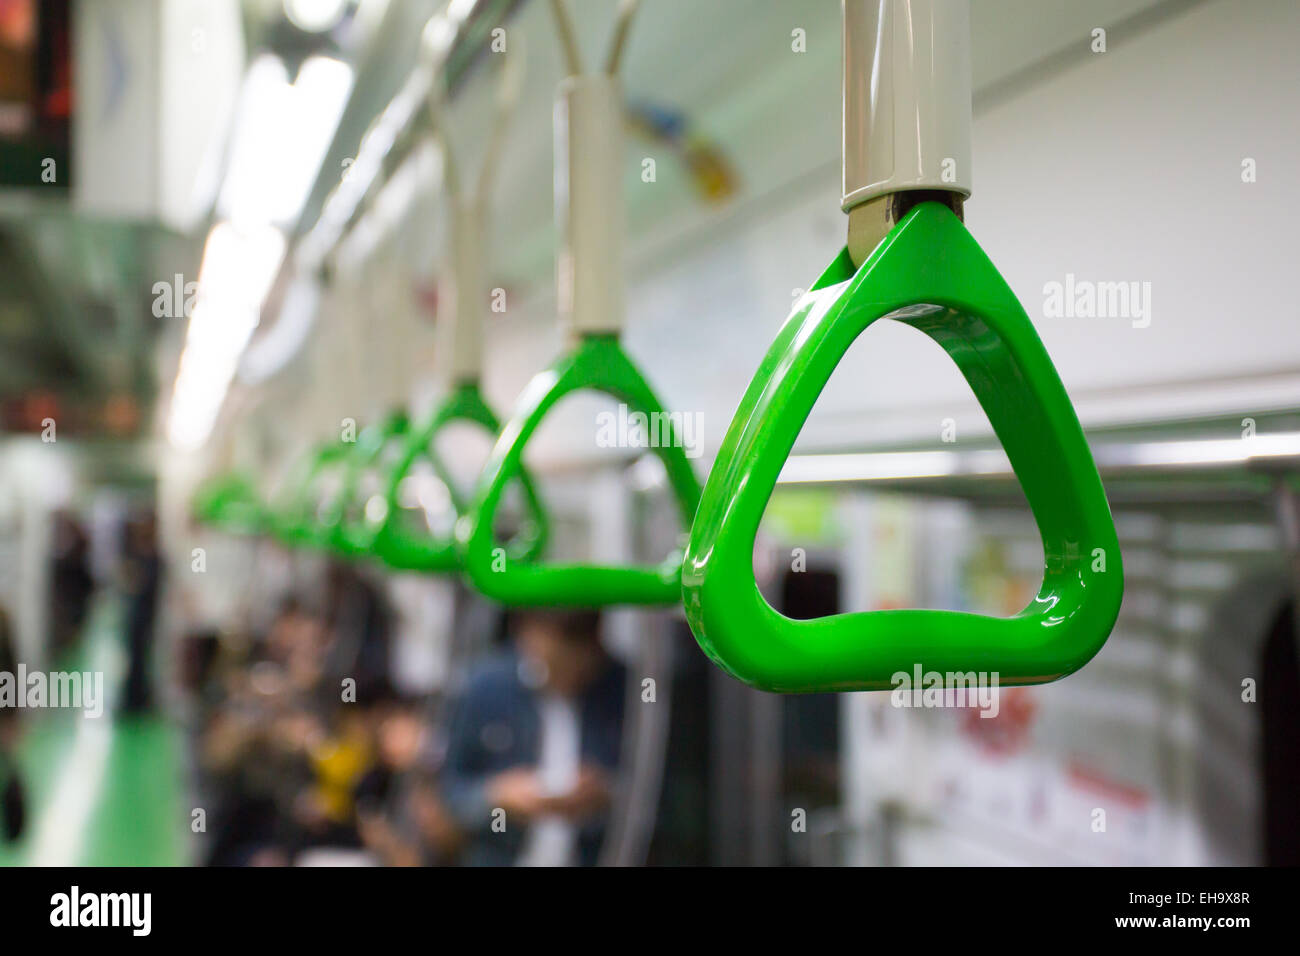 Train Carriage Handle - Stock Image